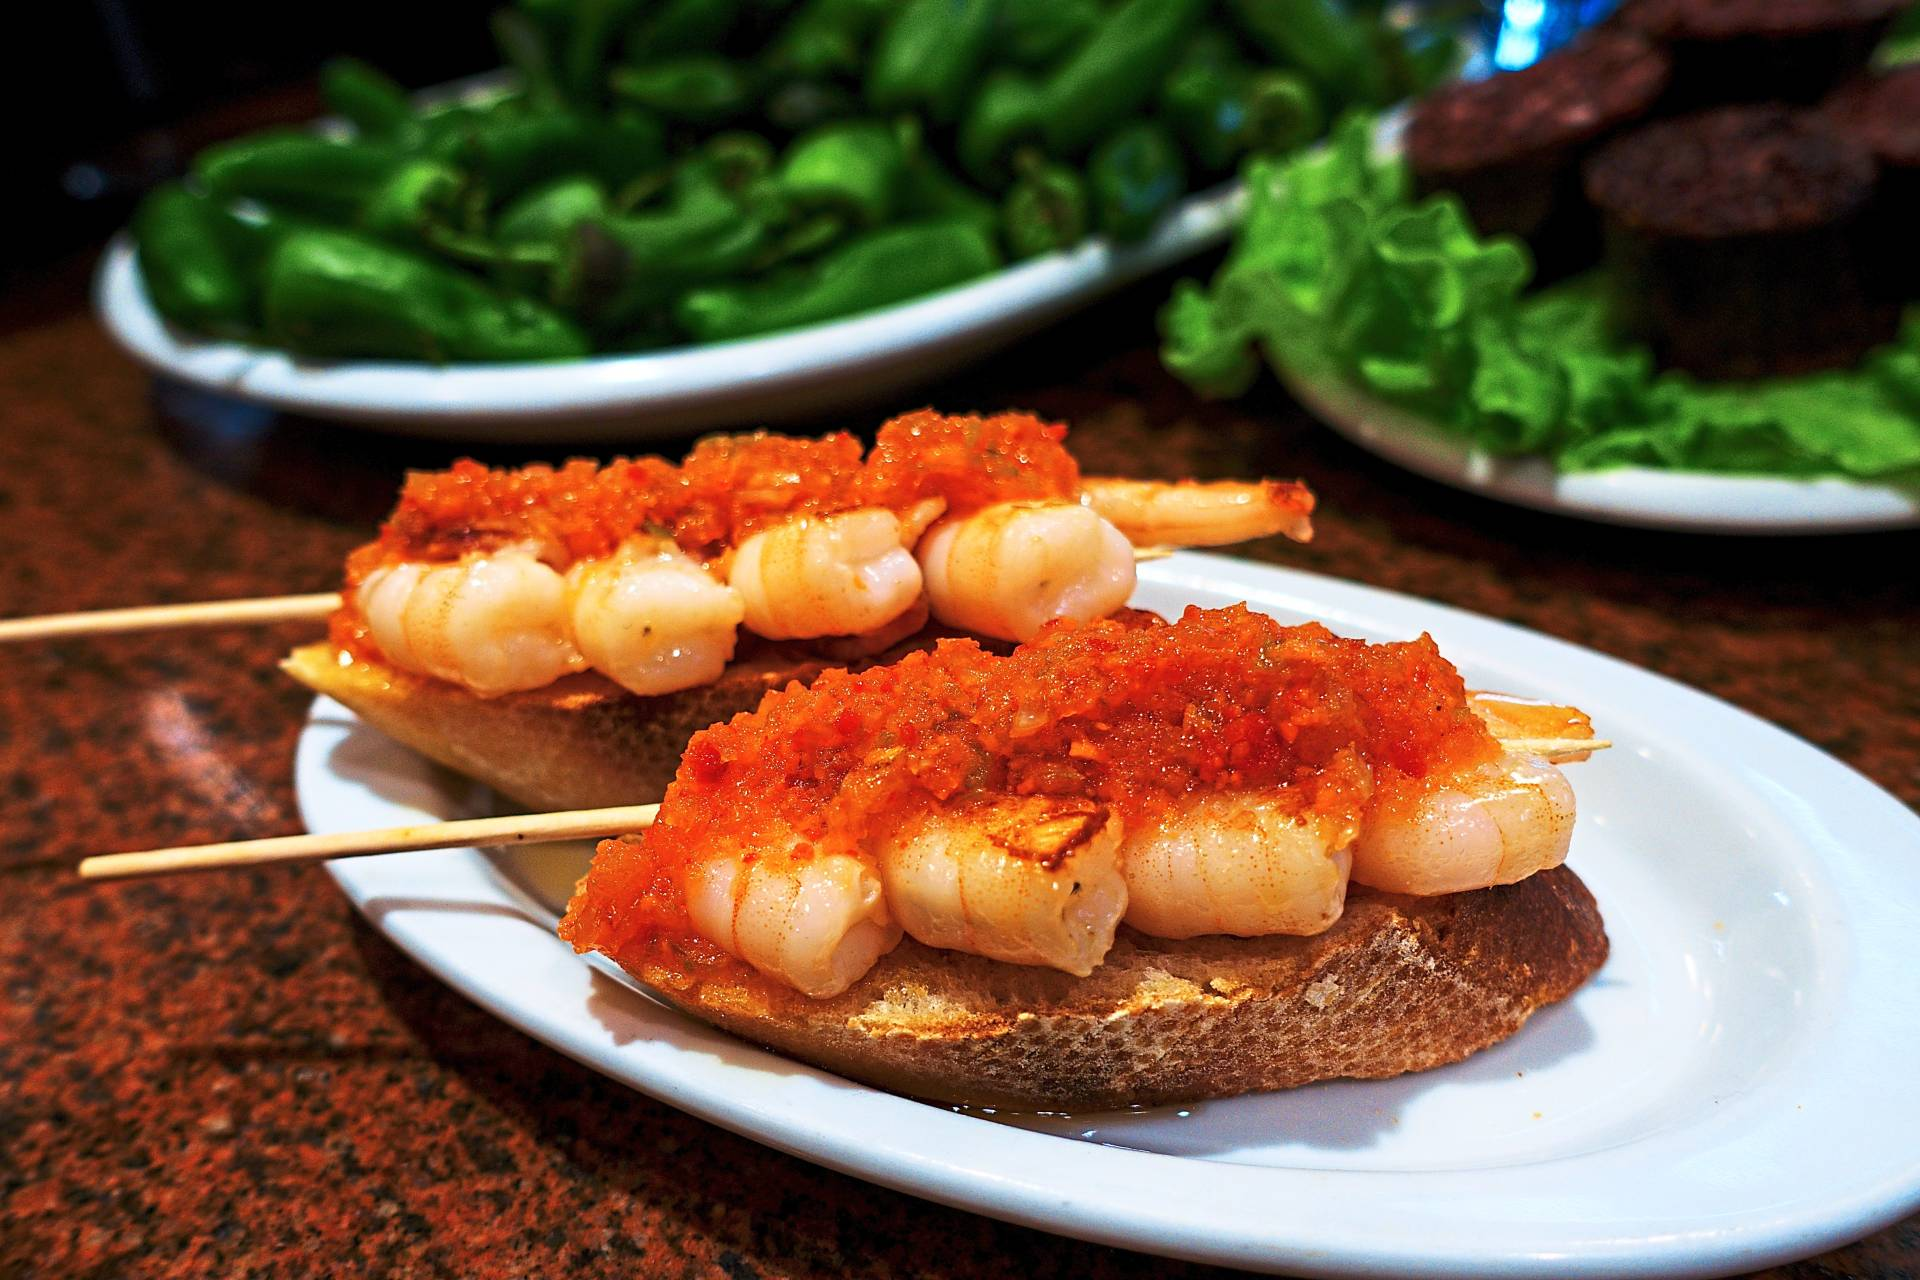 Newbies to San Sebastian shouldn't miss out on caliente pintxos, which are hot dishes cooked to order.